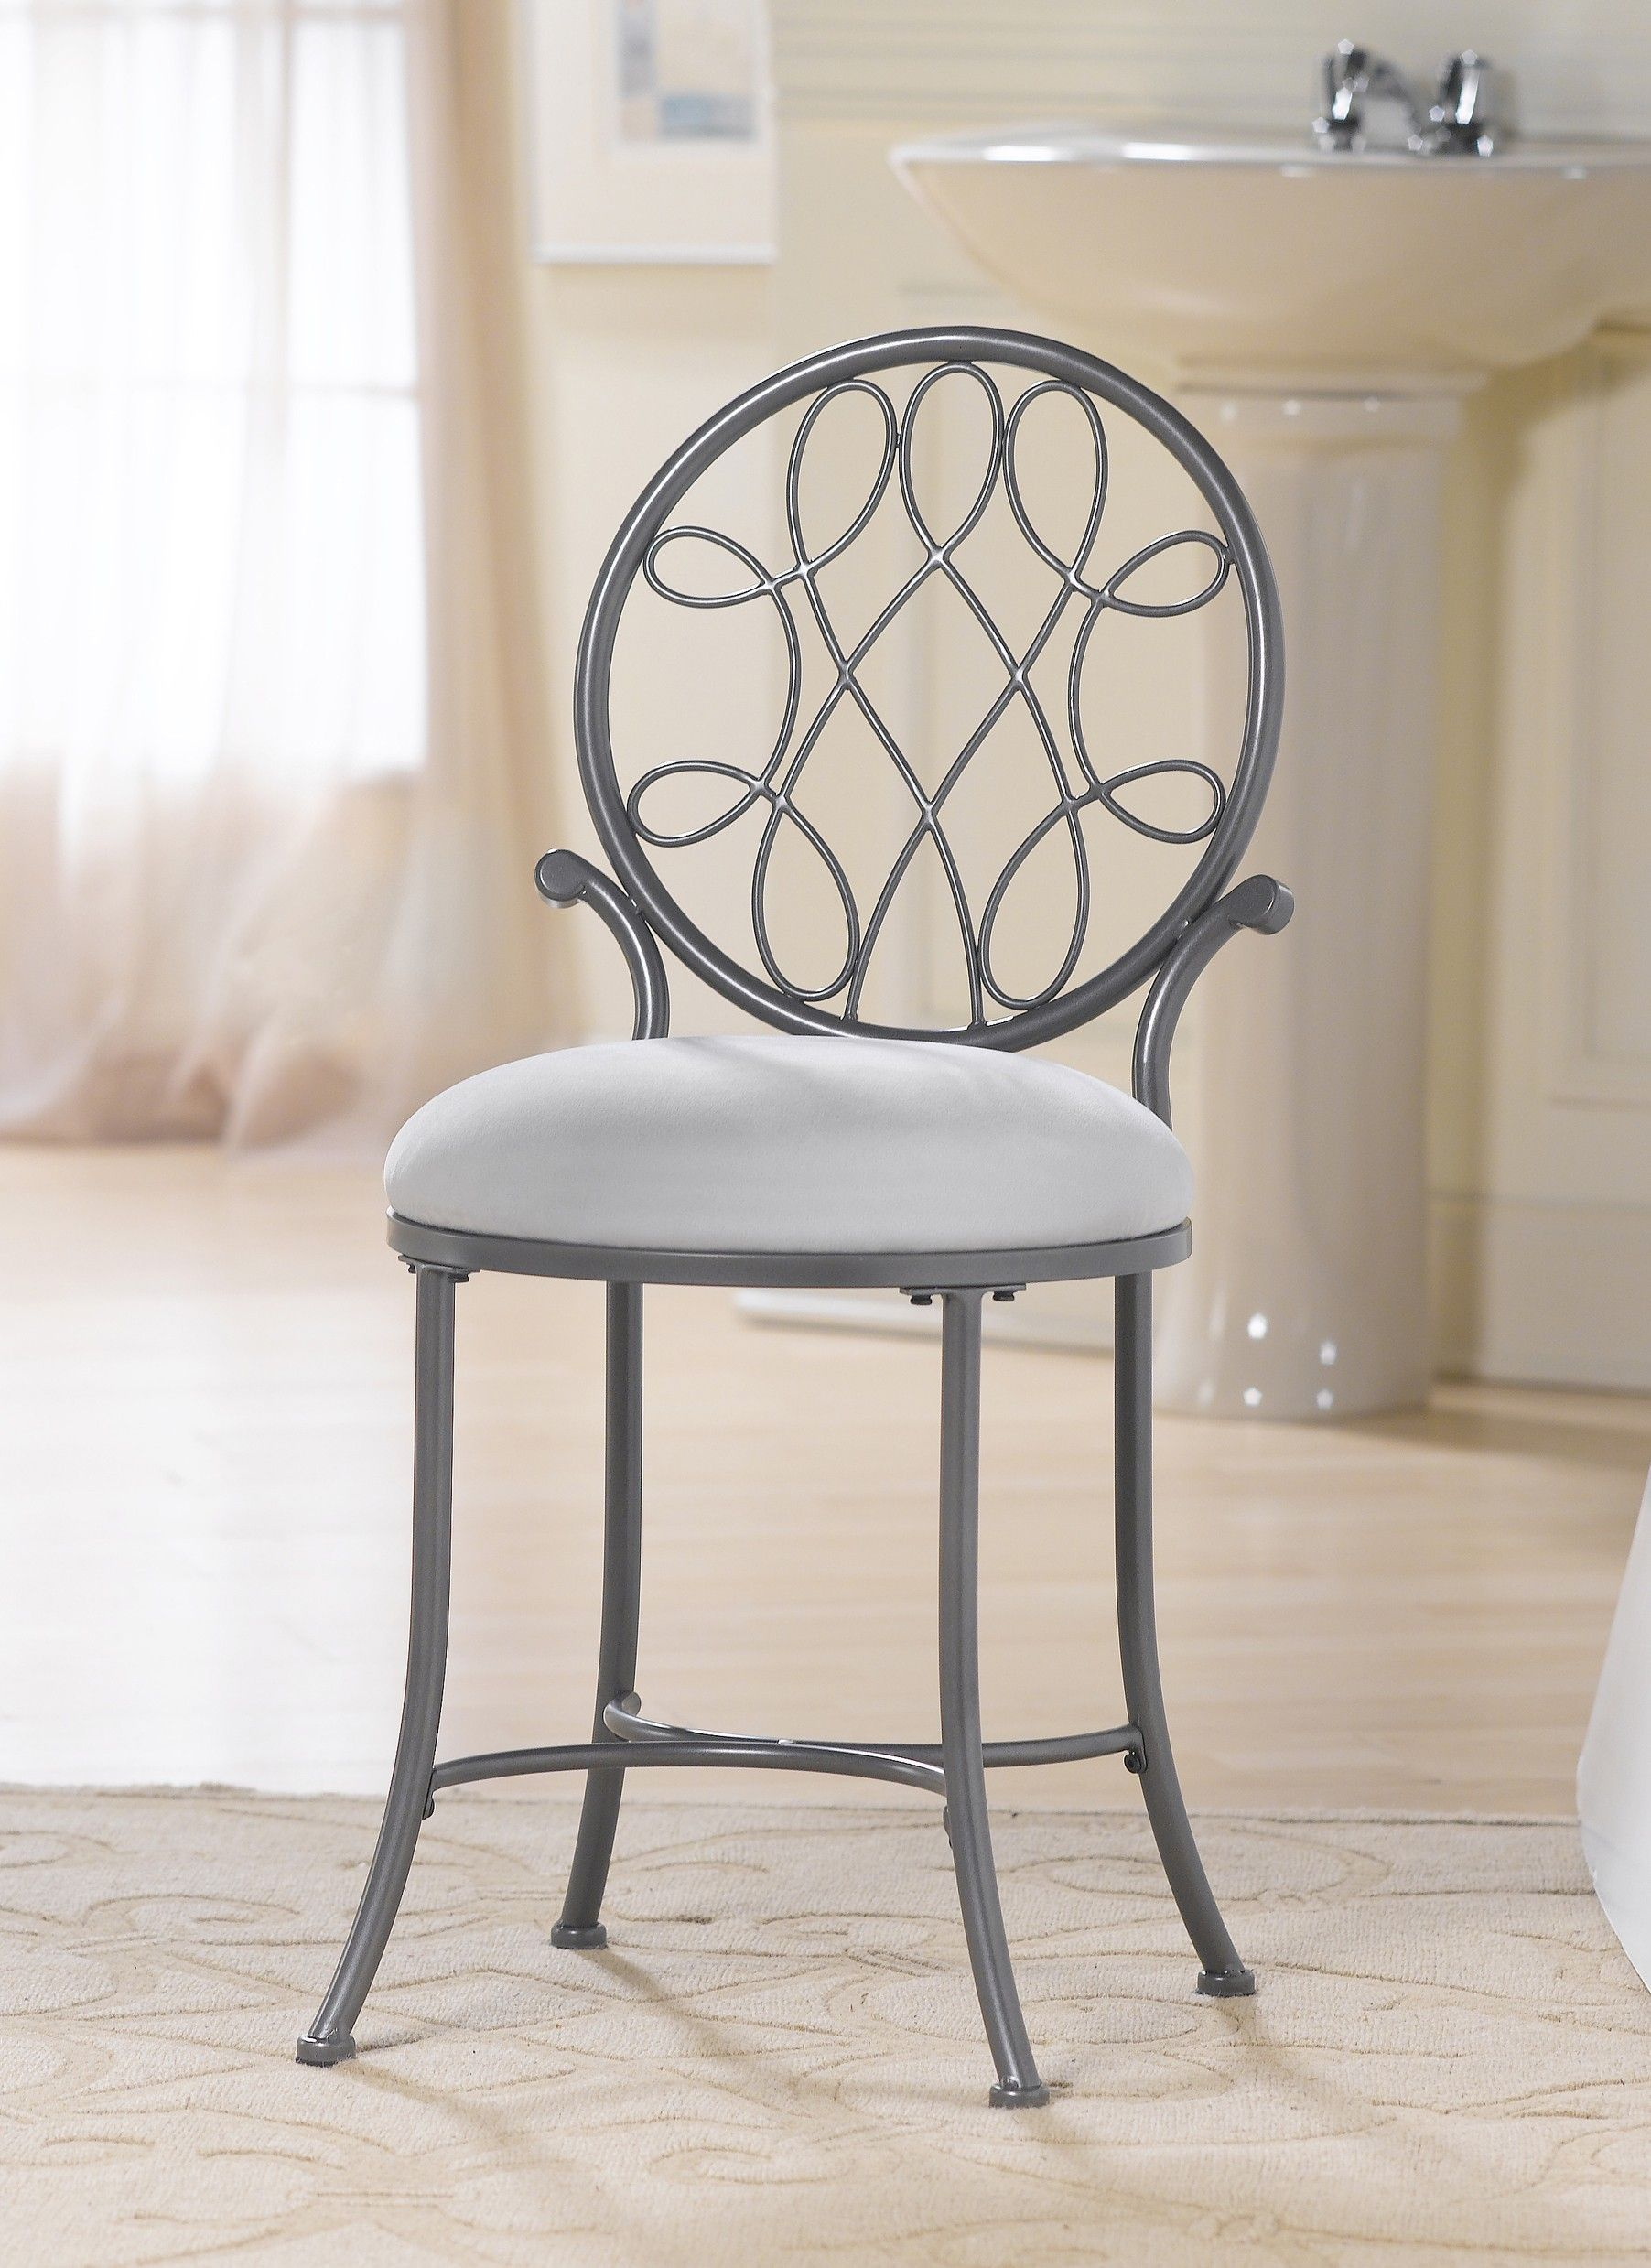 Bathroom Furniture Gray Polished Wrought Iron Vanity Chair With - Bathroom vanity chairs with backs